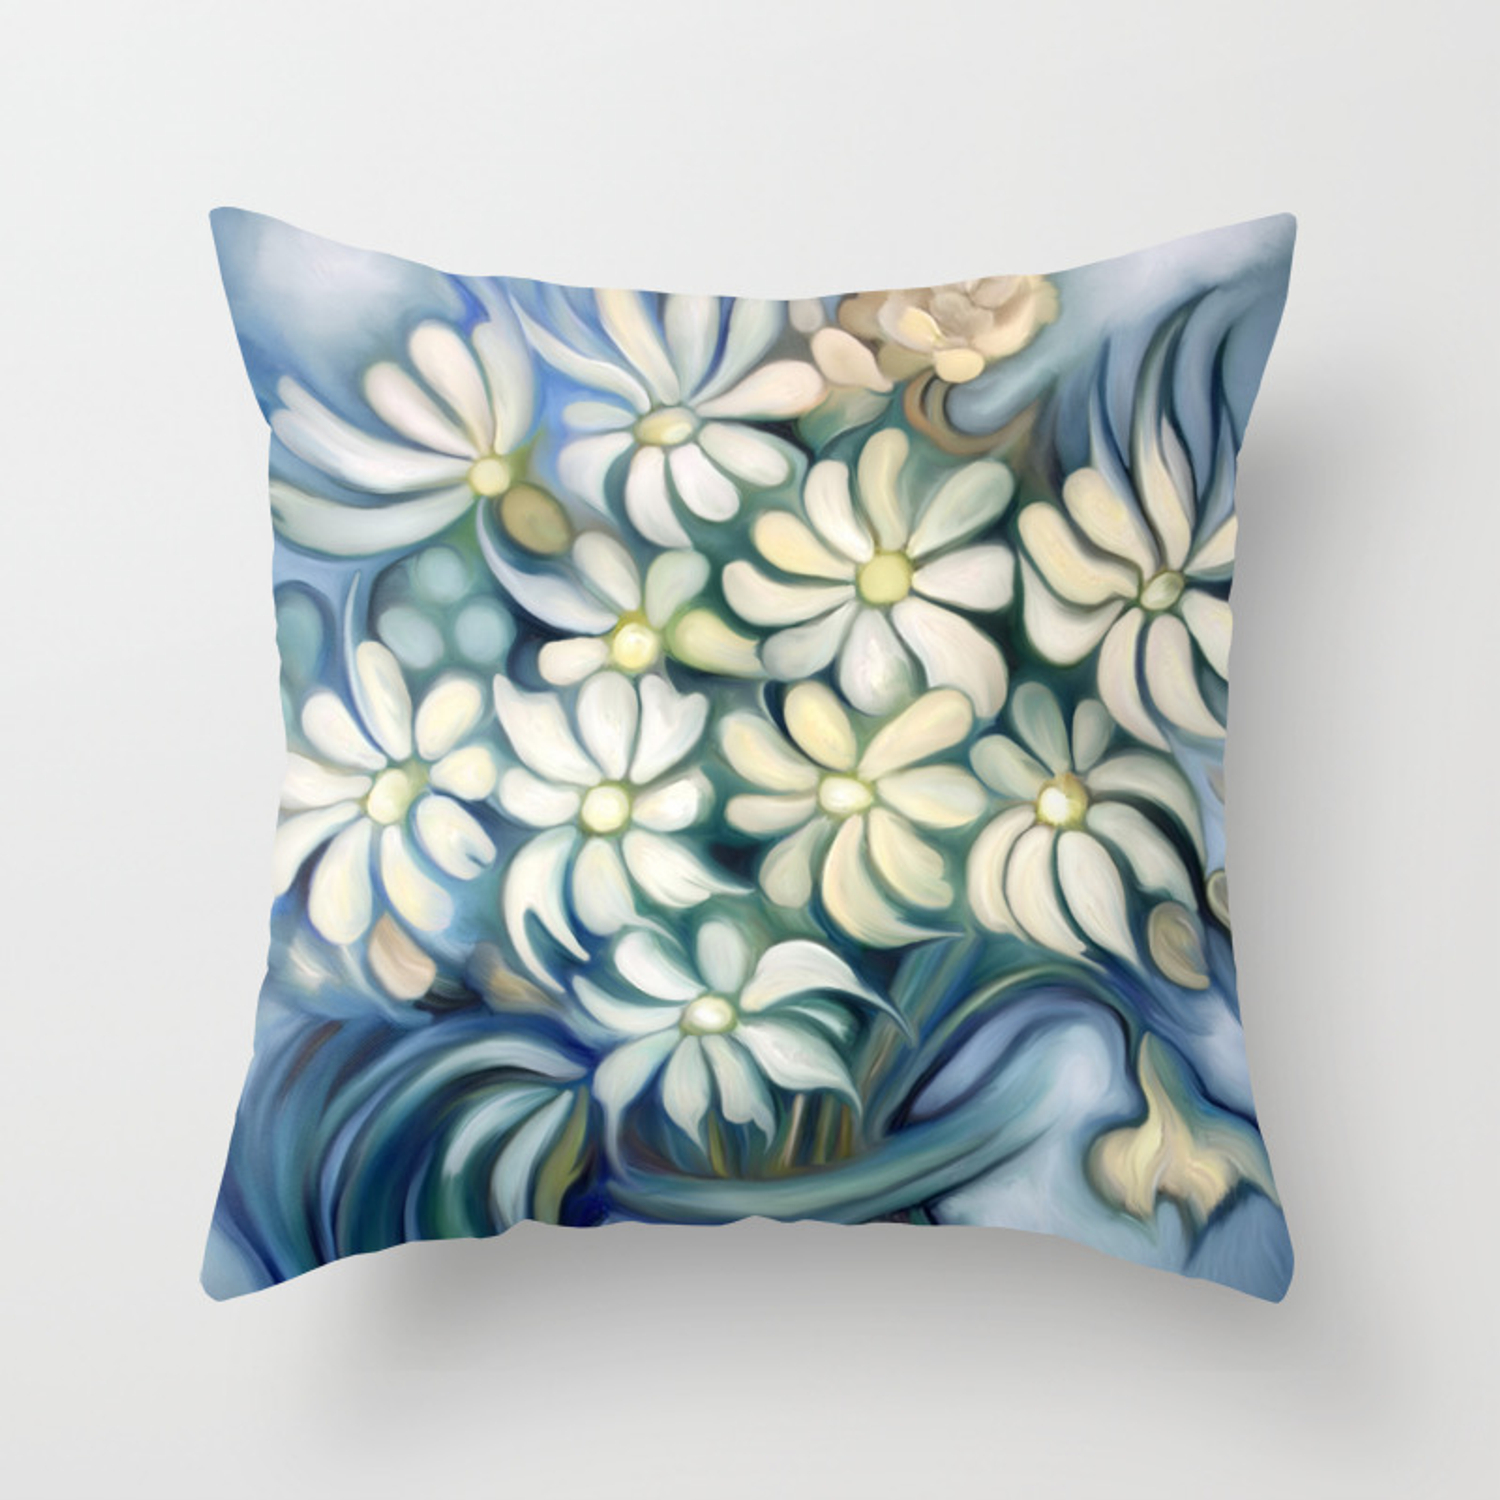 Retro Vintage Bouquet Of White And Blue Flowers Throw Pillow By Marcanton Society6